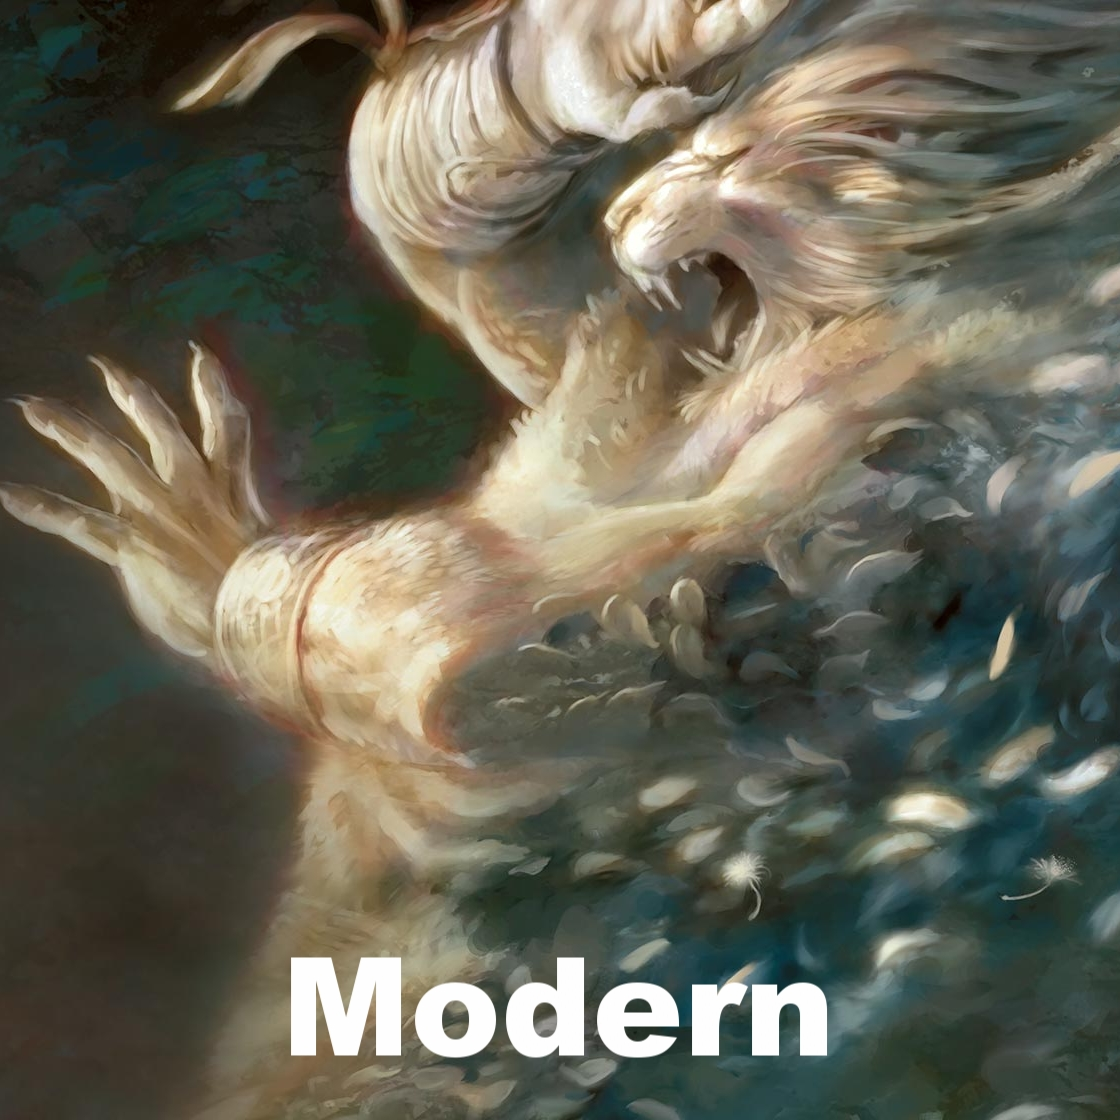 OEJ hosts a Modern tournament every Thursday night at 7pm. Play 4 rounds and get a pack per win! Entry is $5.